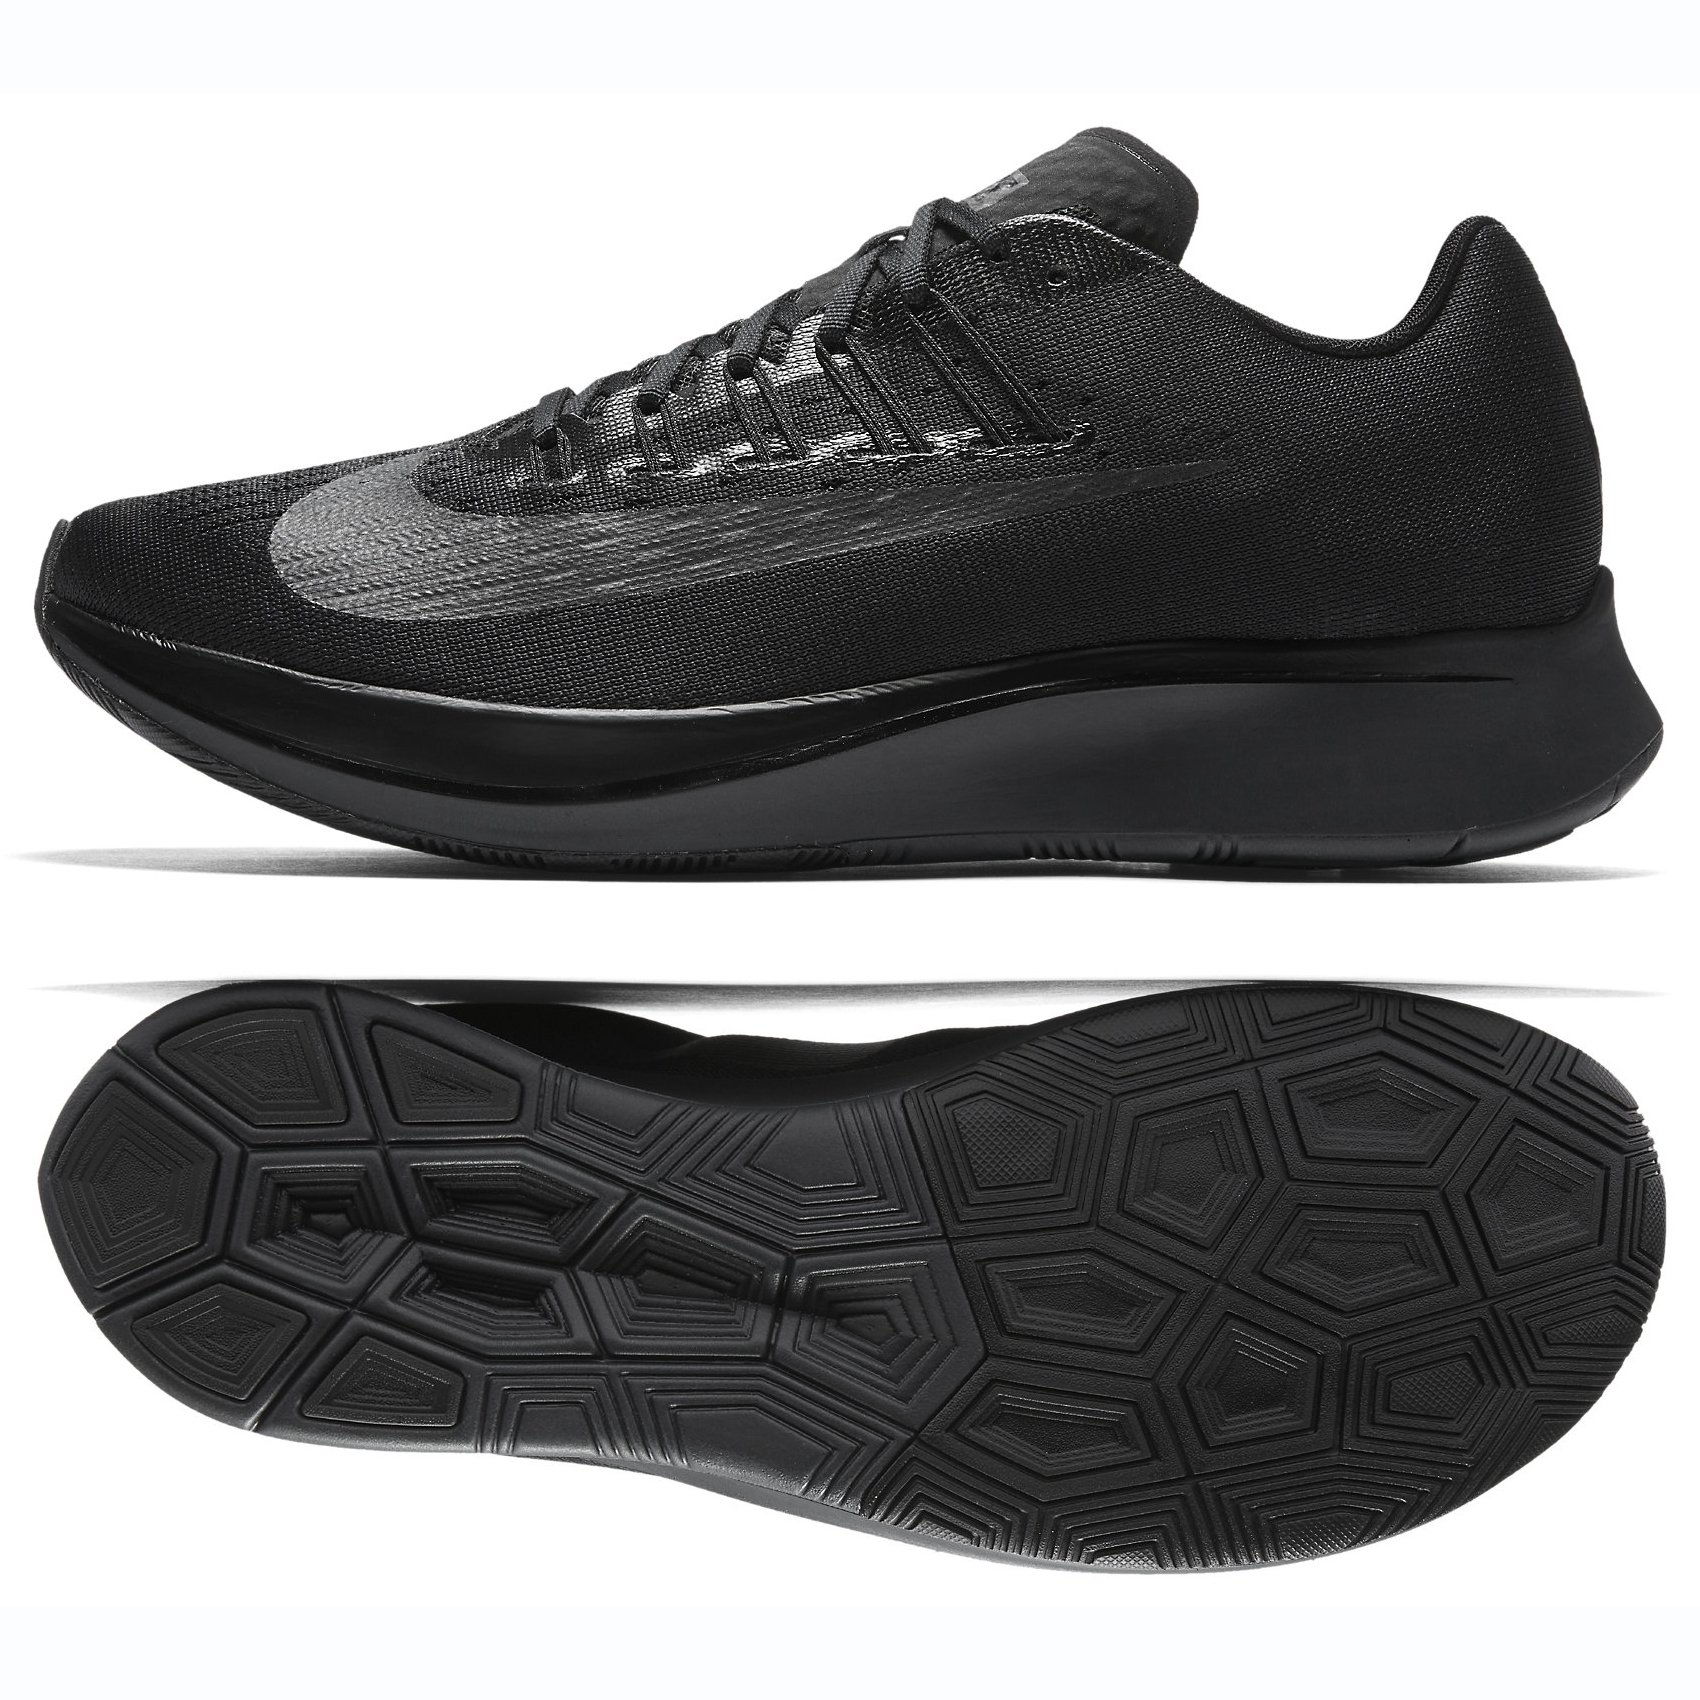 Nike Zoom Fly Men's running shoes 880848 003 Multiple sizes - New With Box (11.5,Medium (D, M)) by Nike